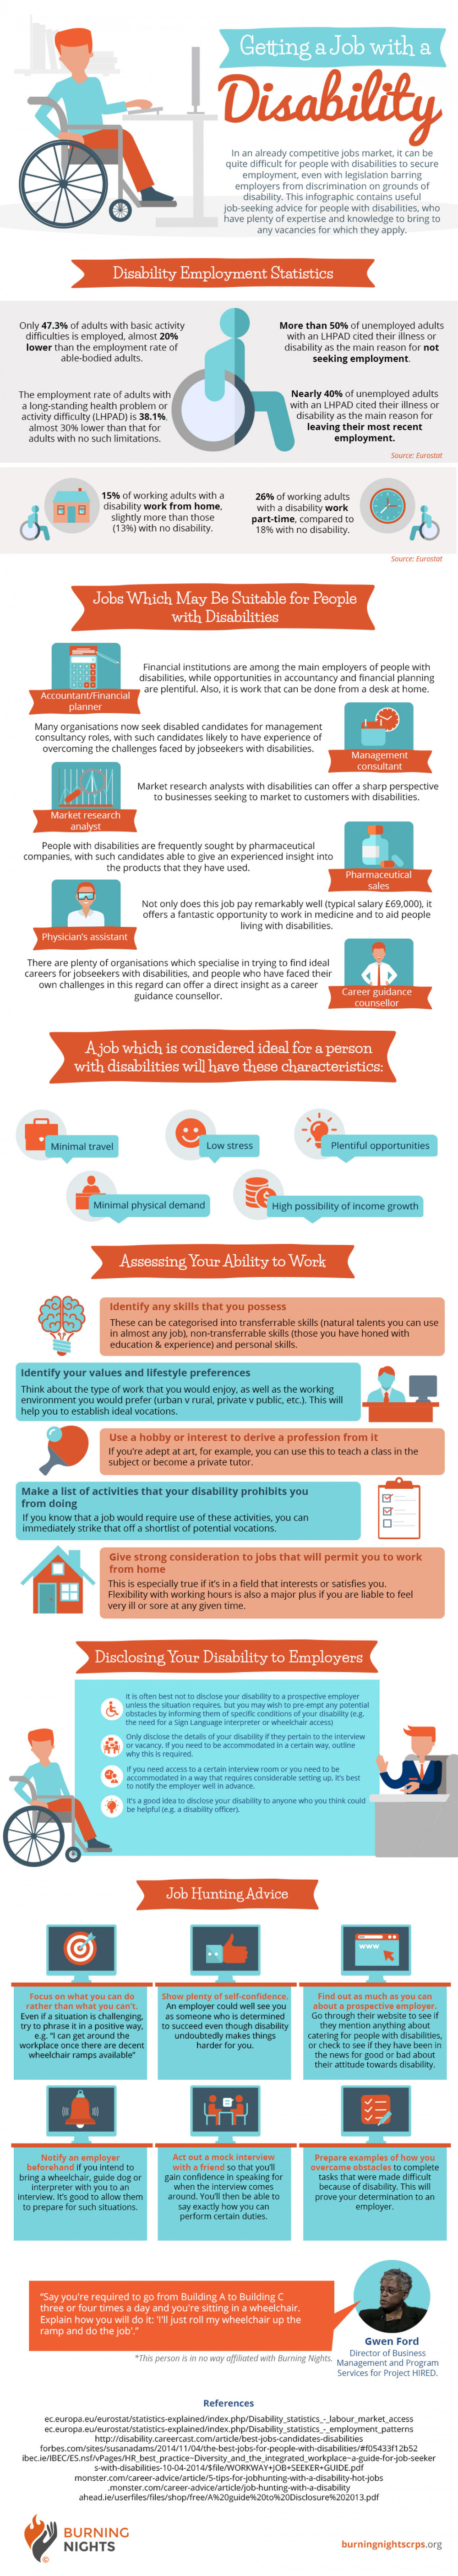 [Infographic] How To Get A Job With A Disability